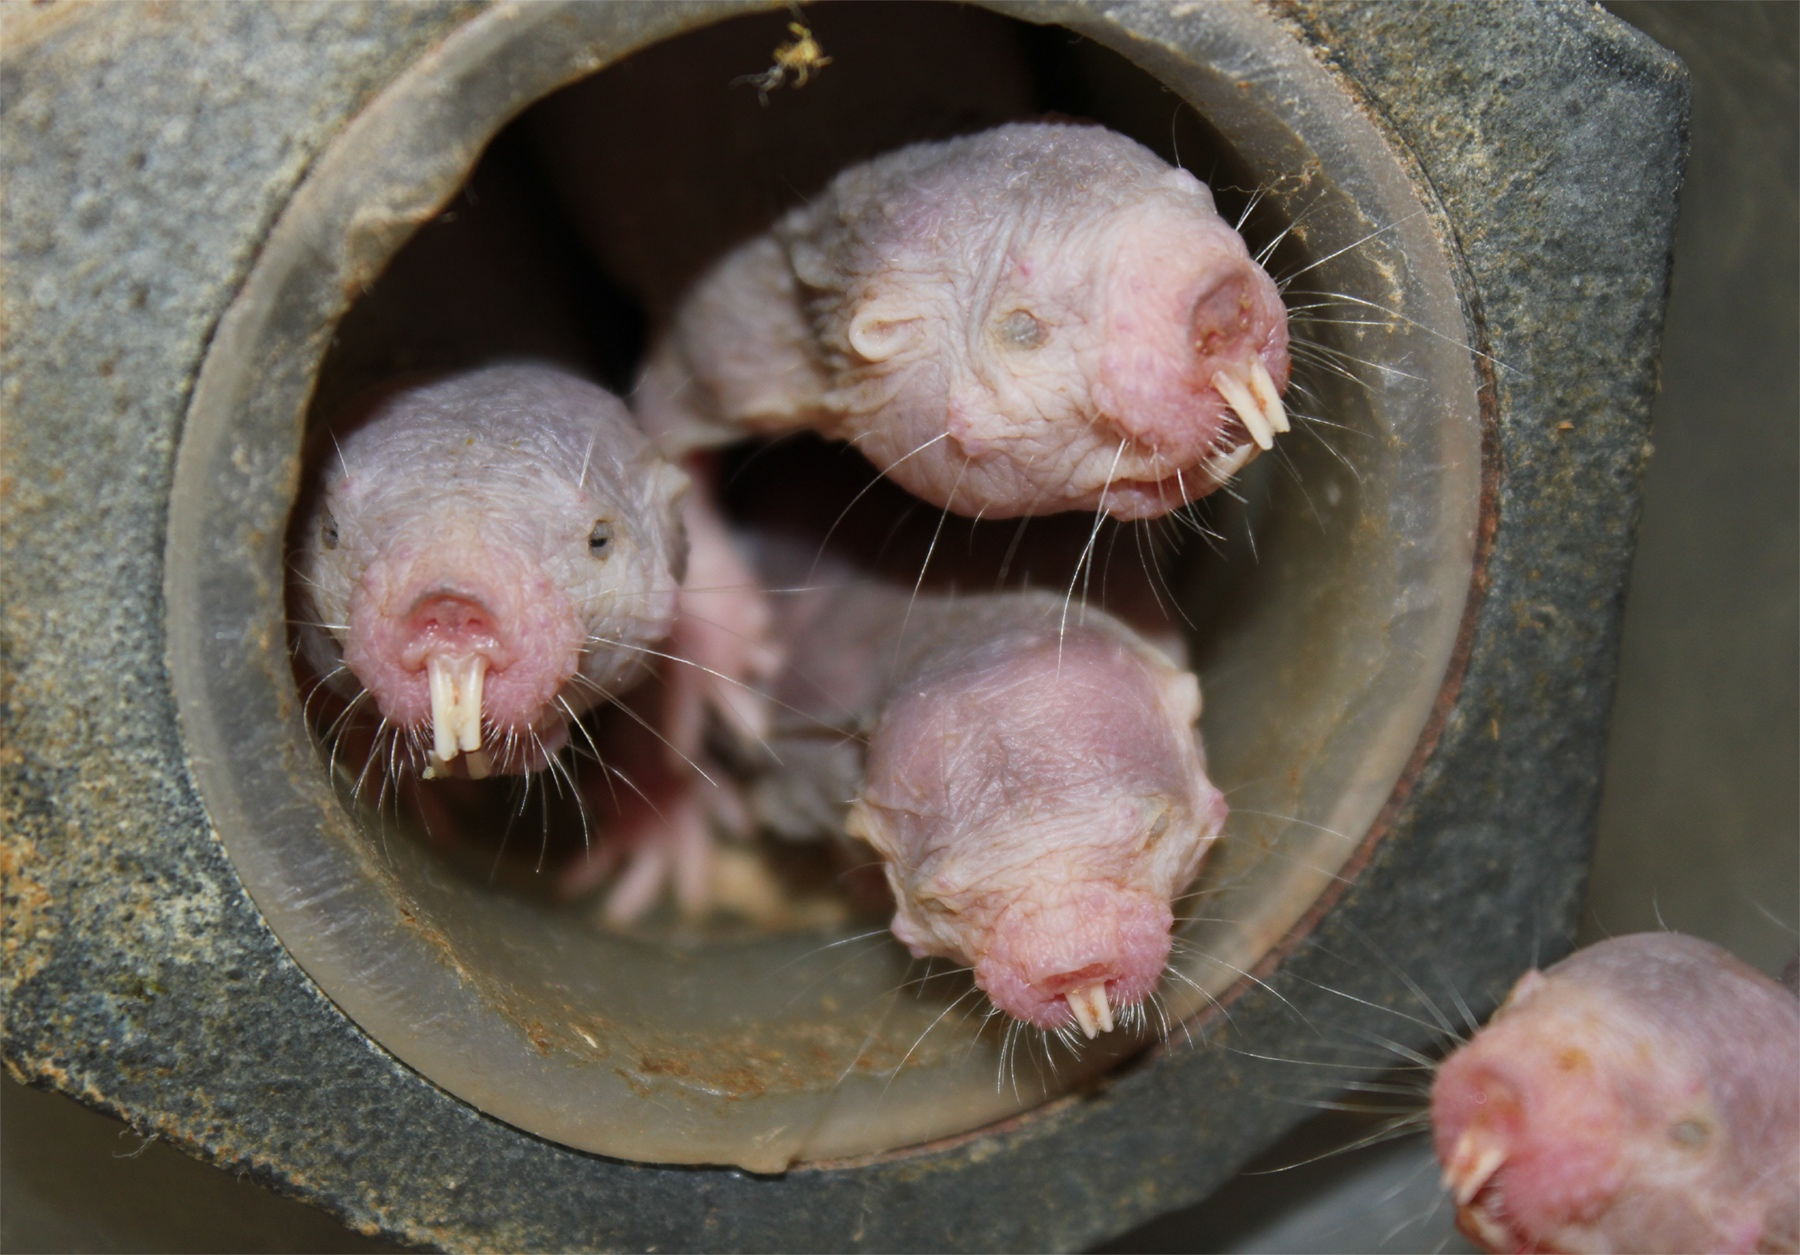 Naked Mole Rats Might Love Their Queen's Pups Because They've Eaten Her Poop